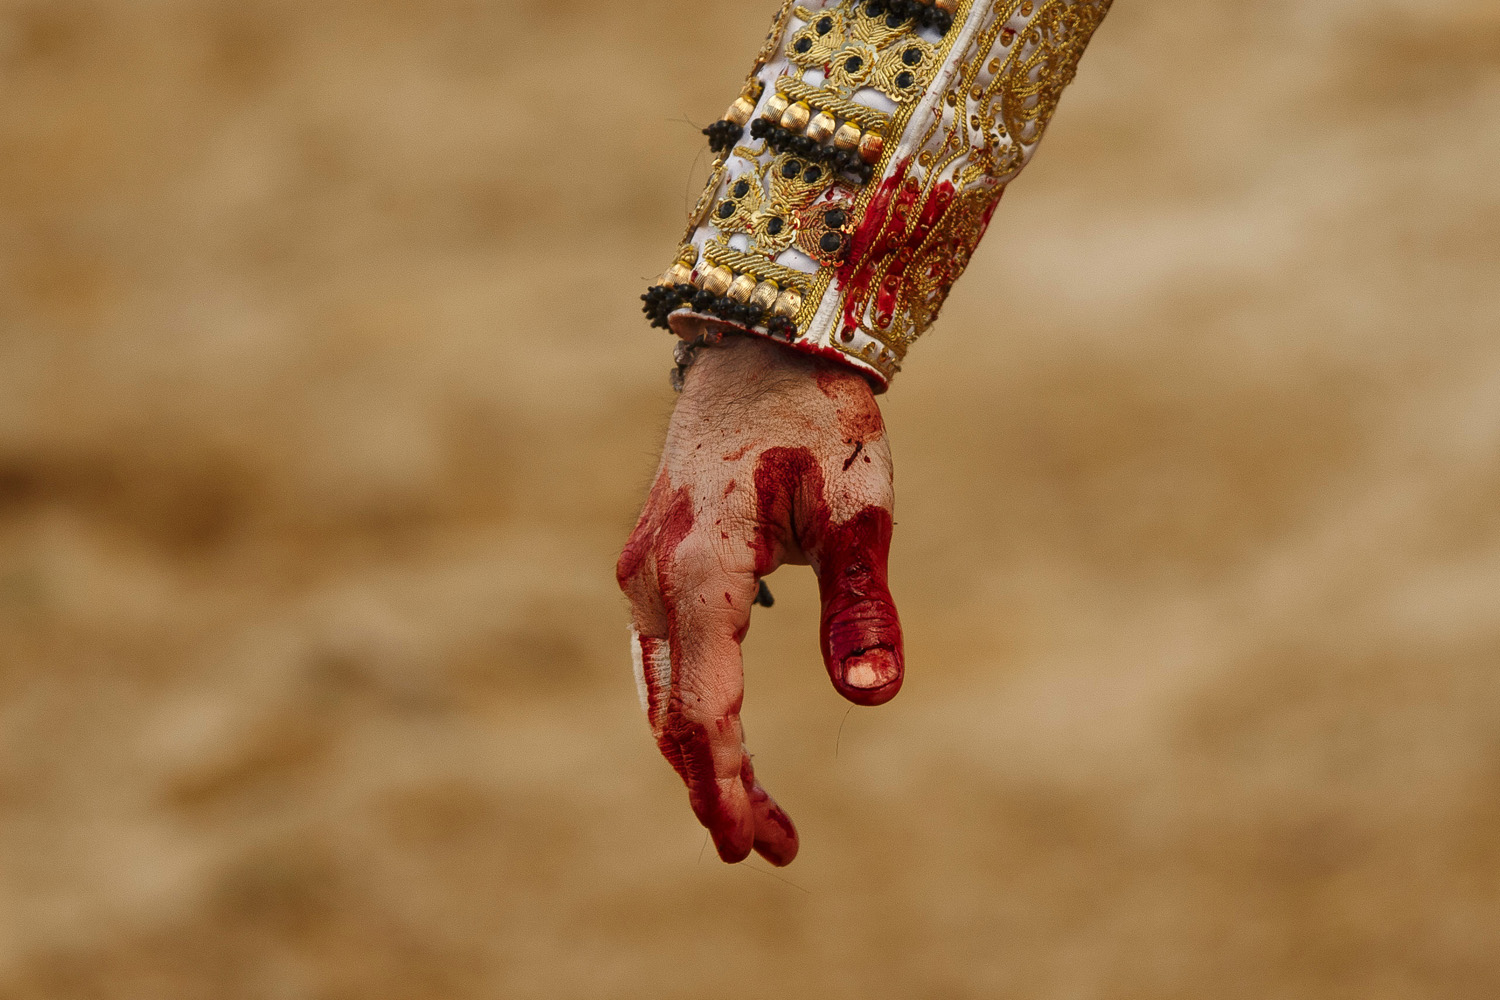 April. 6, 2013. Spain's bullfighter Juan Jose Padilla's hand is stained with blood from a bull during a bullfight at La Muralla bullring in Brihuega, Spain.